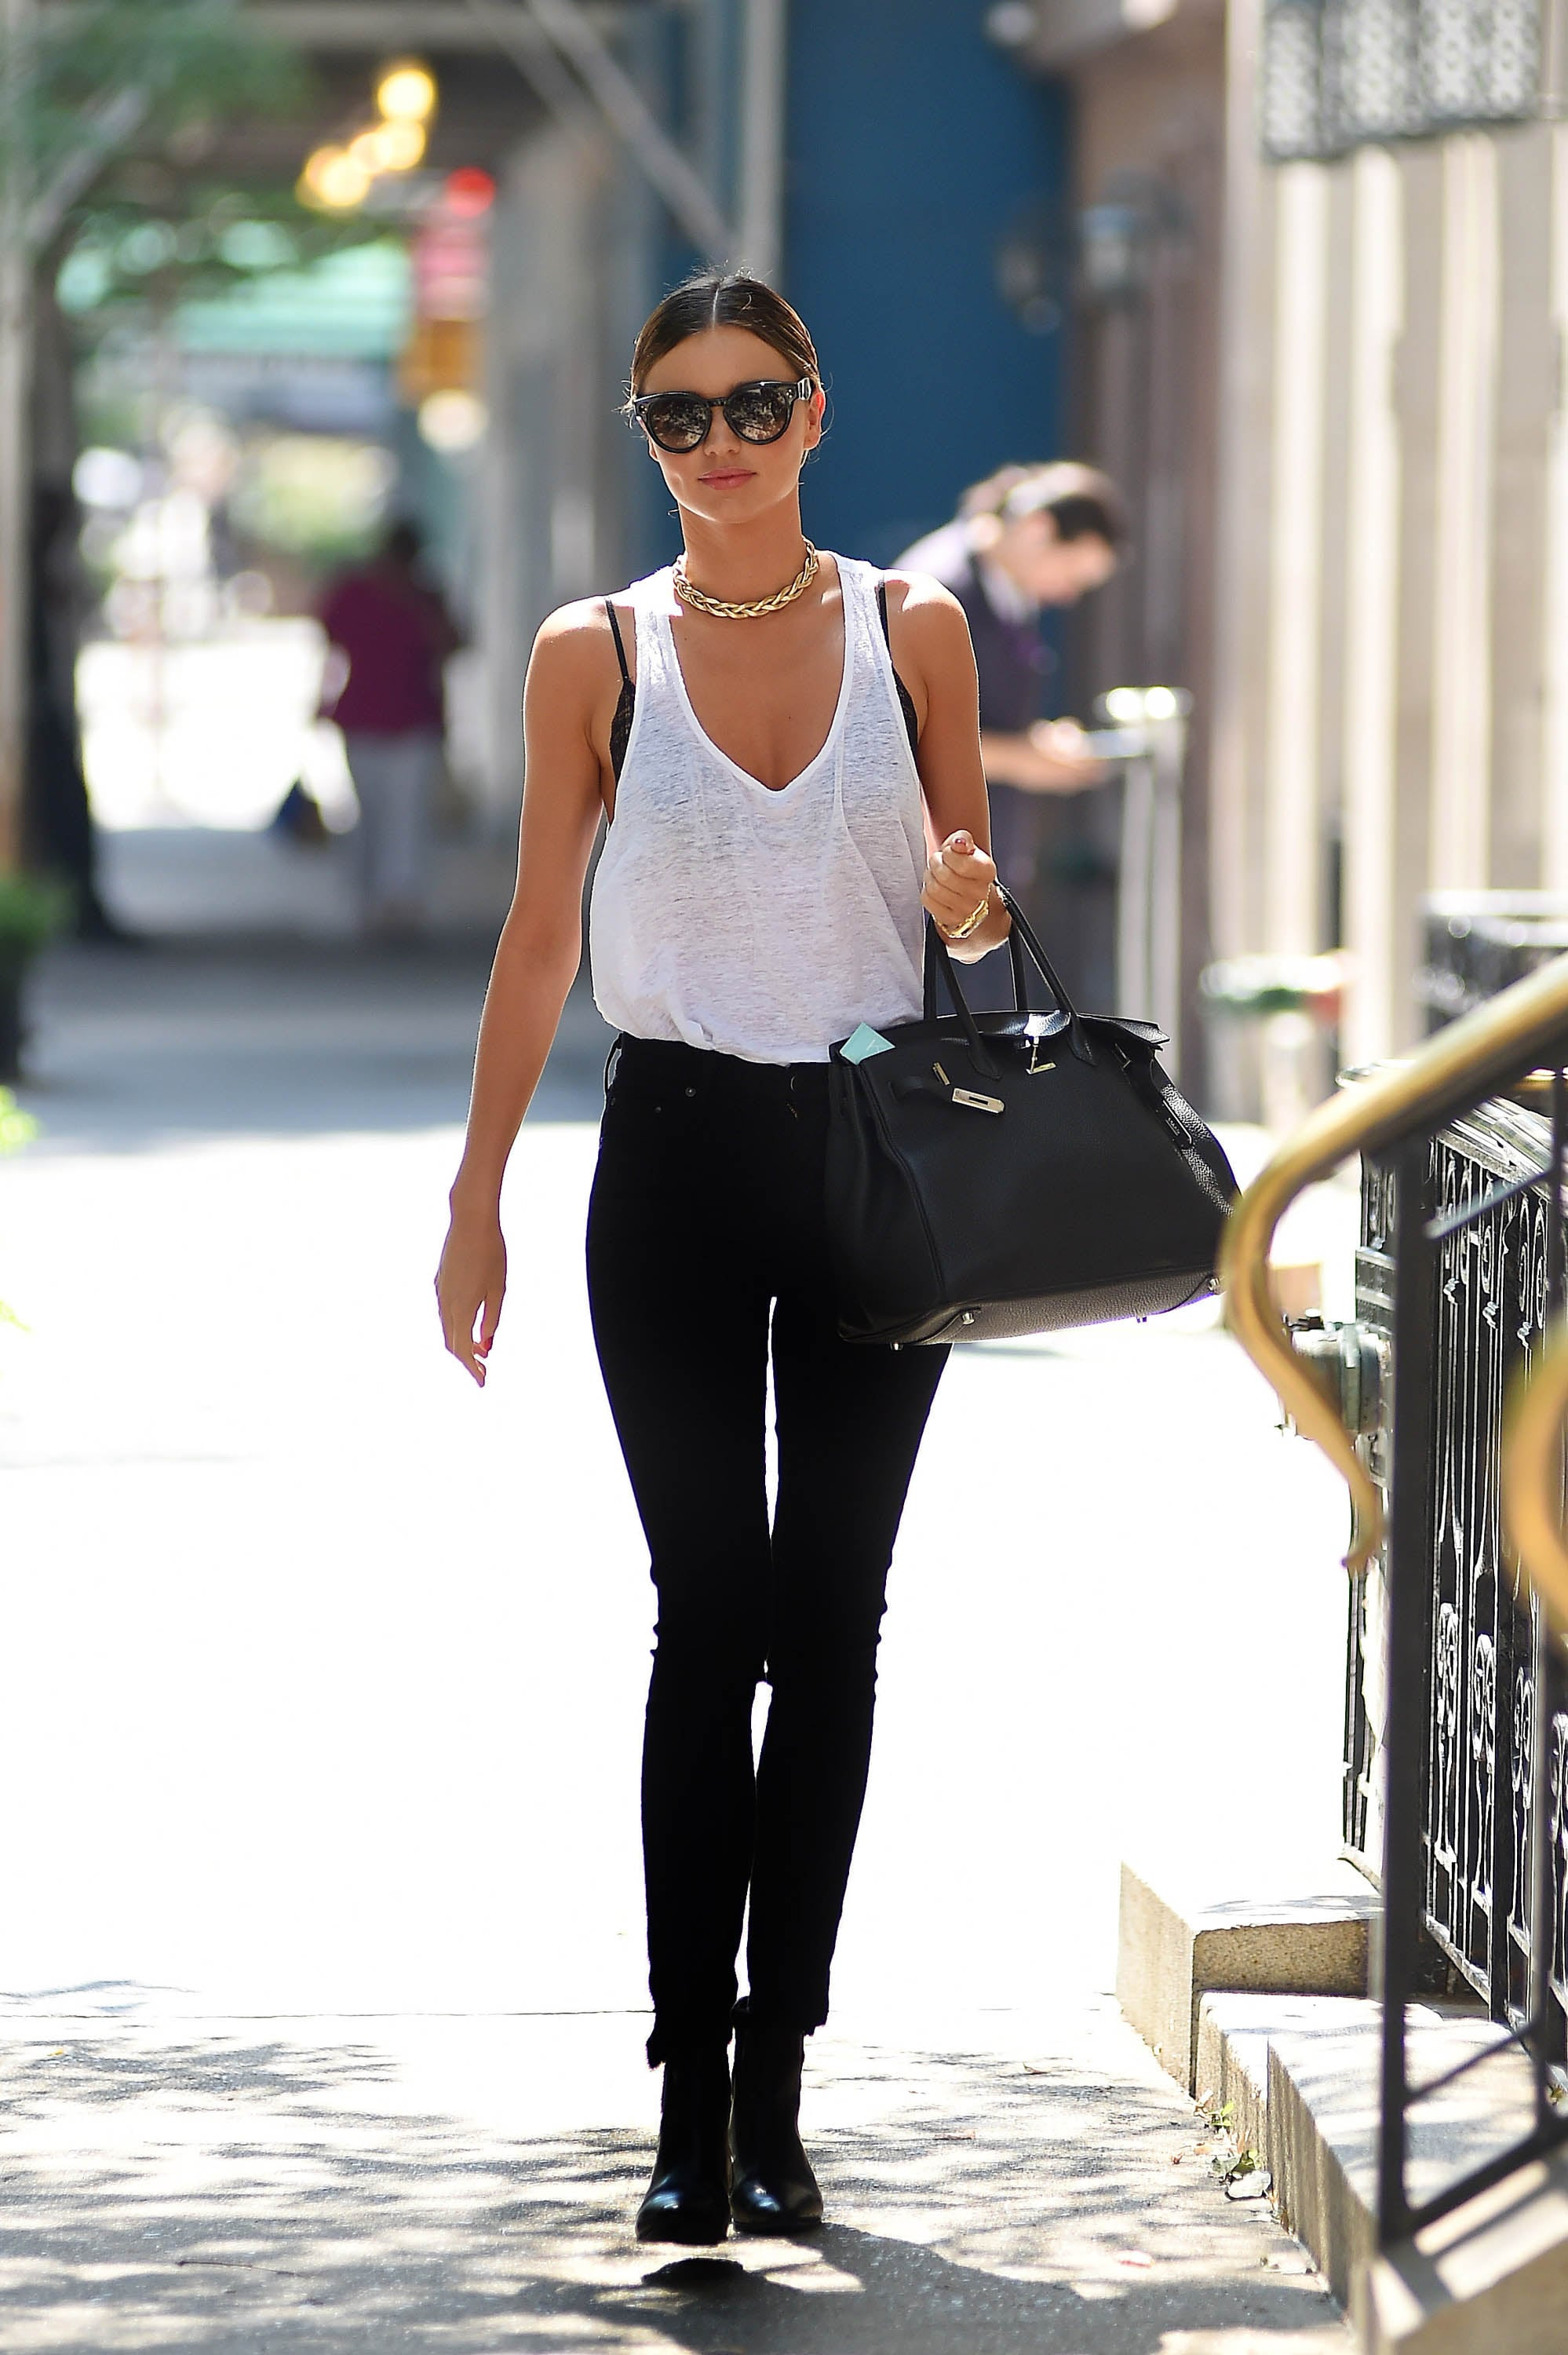 All it takes to make like Miranda is balance. Choose live-in skinnies that are more soft than structured, and tuck them into your boots. Then, the key is to veer lighter up top. A burnout tank, lace bra, and supersimple accessories will have you nailing your throw-on-and-go getup in no time. Source: Getty / NCP/Star Max